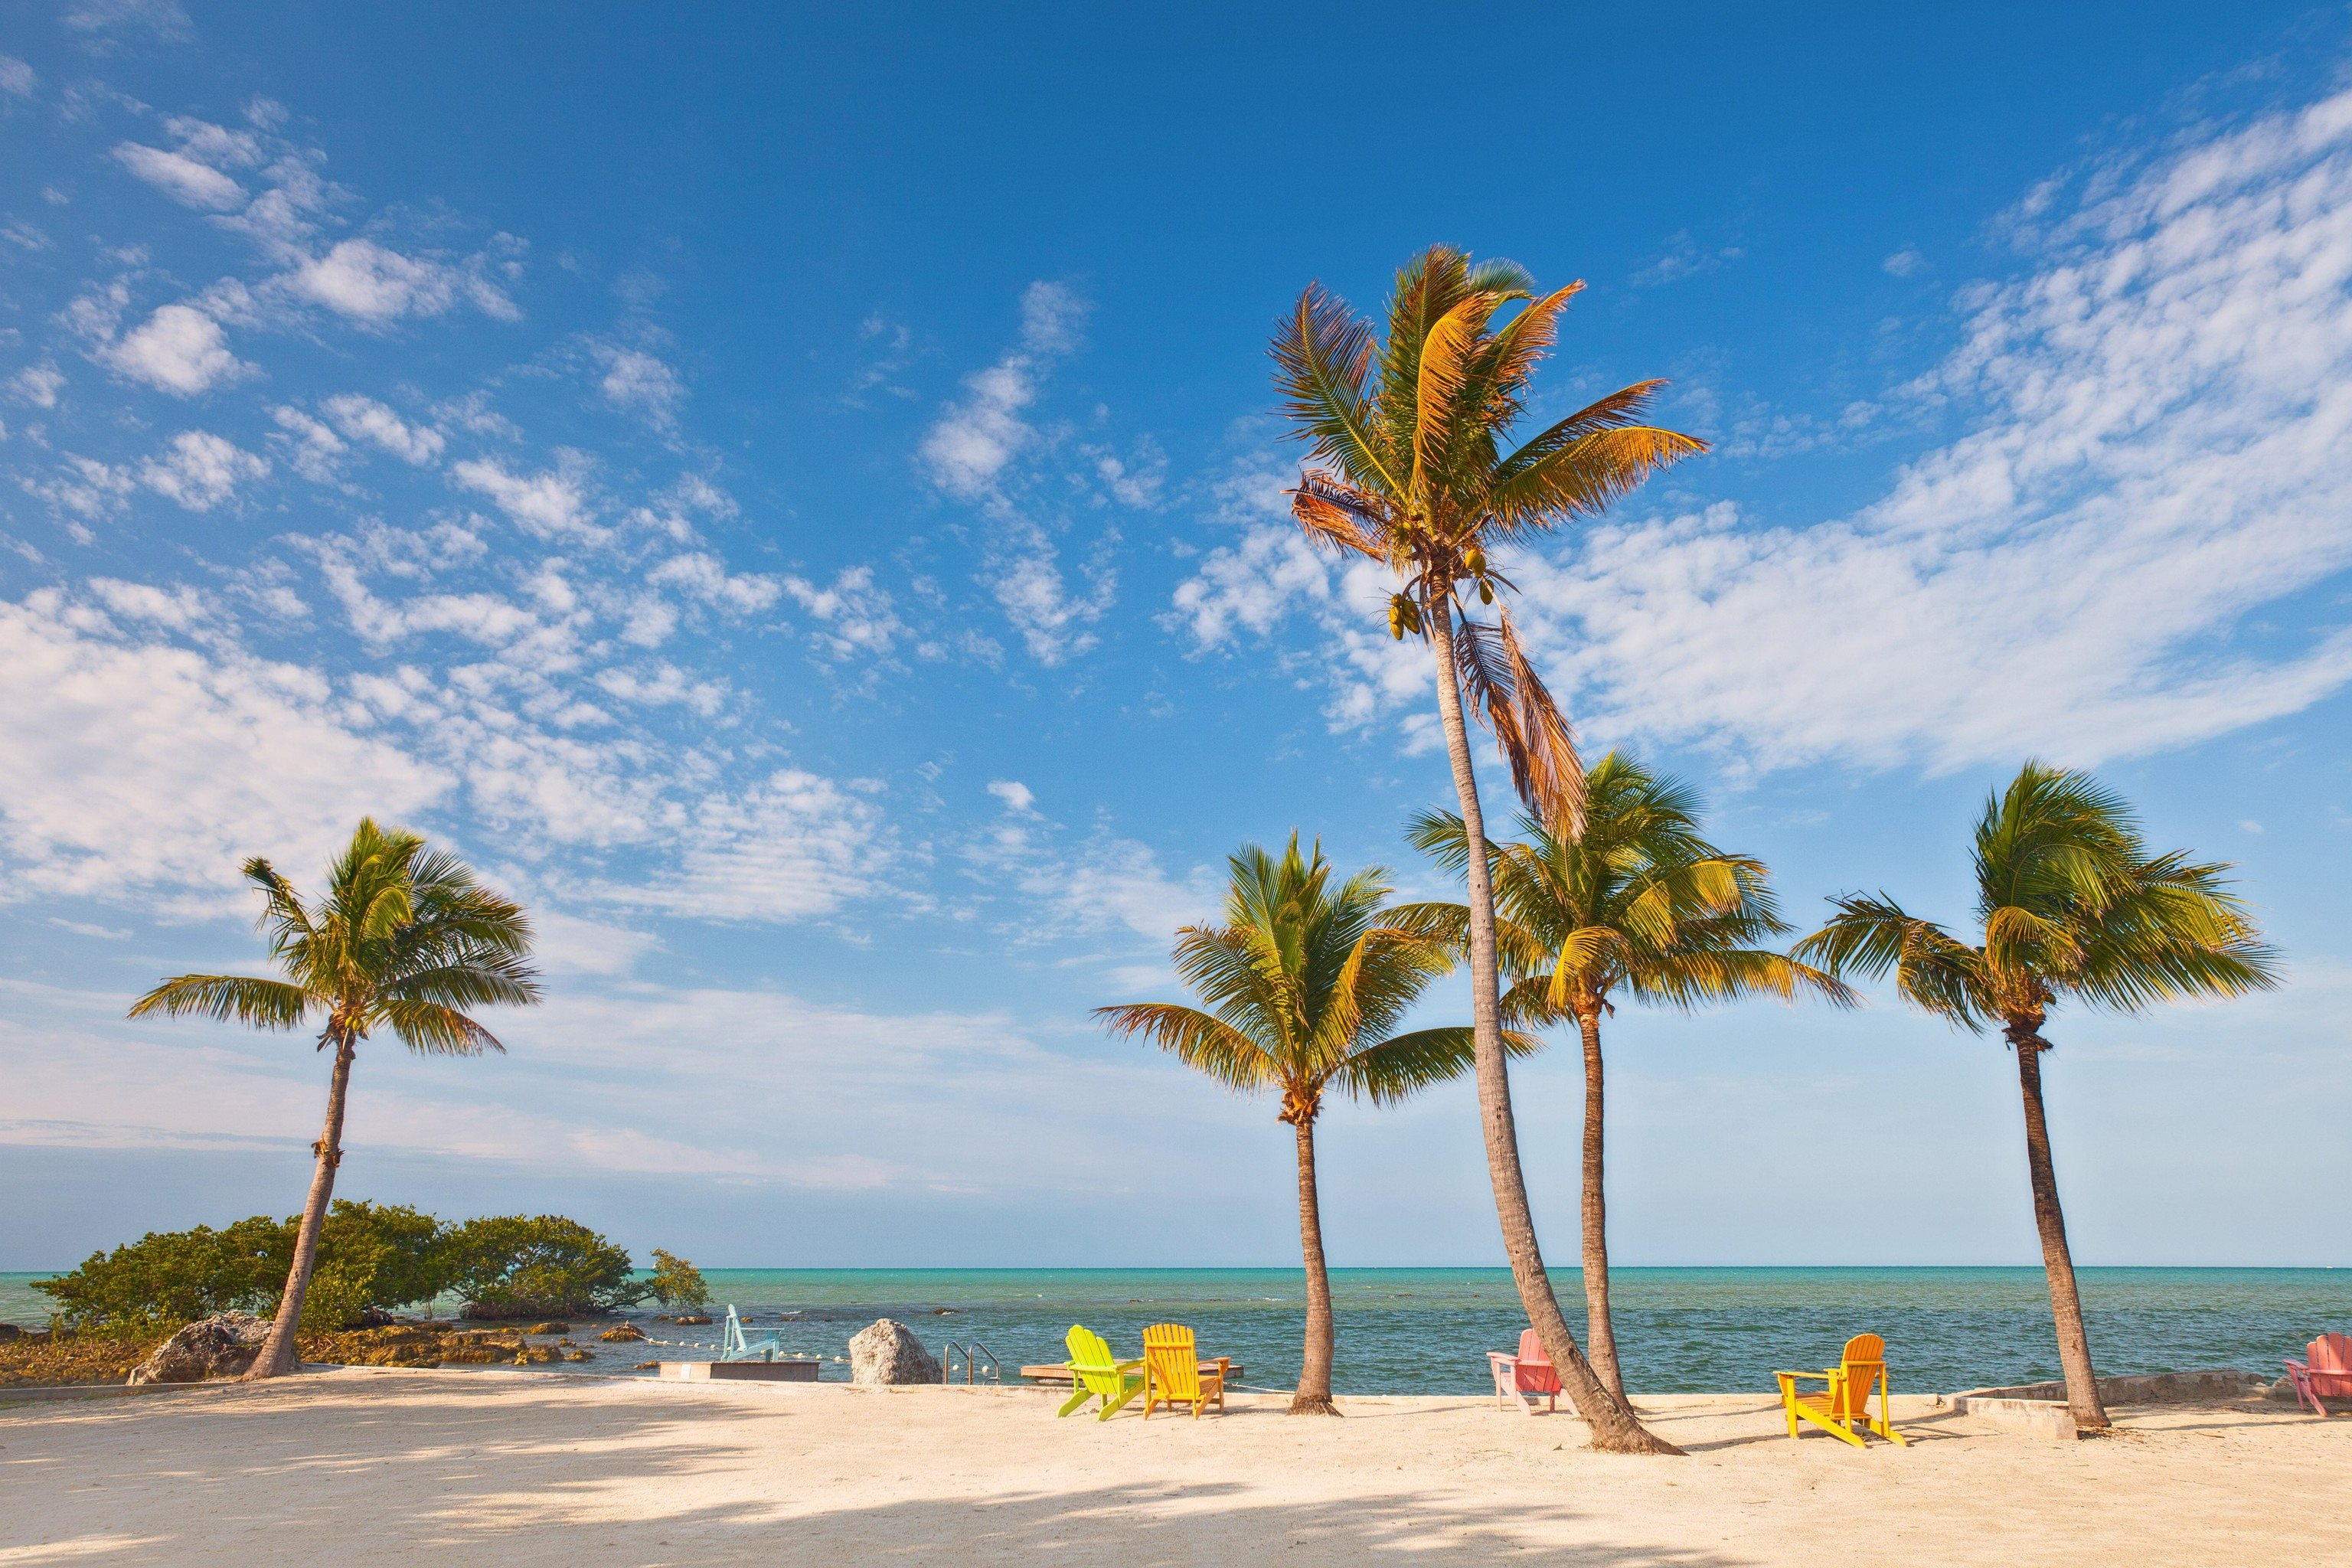 Trip Ideas sky tree outdoor water palm Beach shore body of water Sea Ocean caribbean vacation Coast palm family plant tropics arecales woody plant bay sand cape Island lined sandy